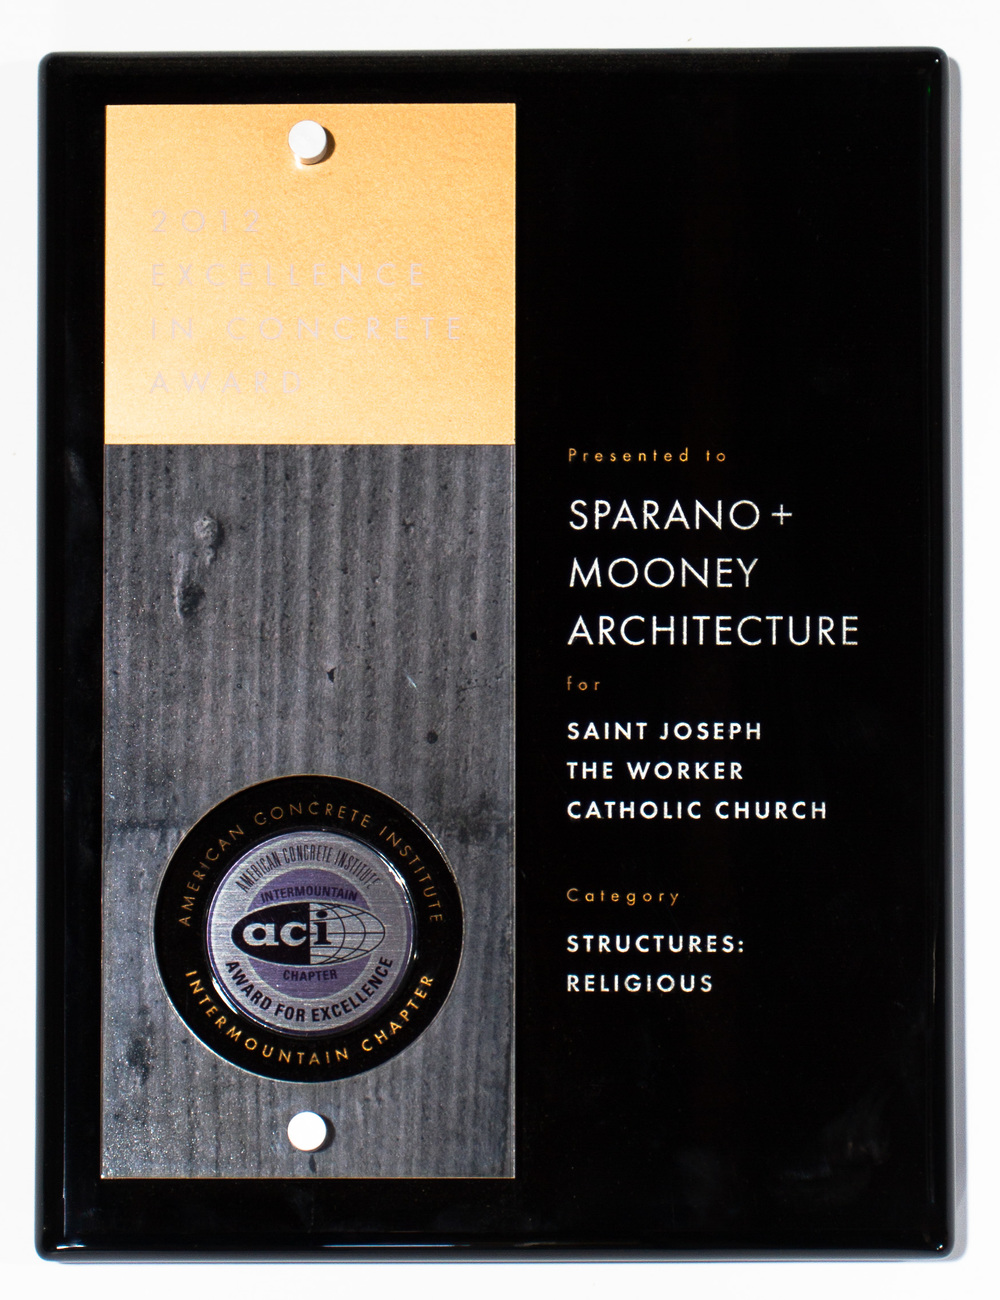 SparanoMooneyArchitecture_Award(10)